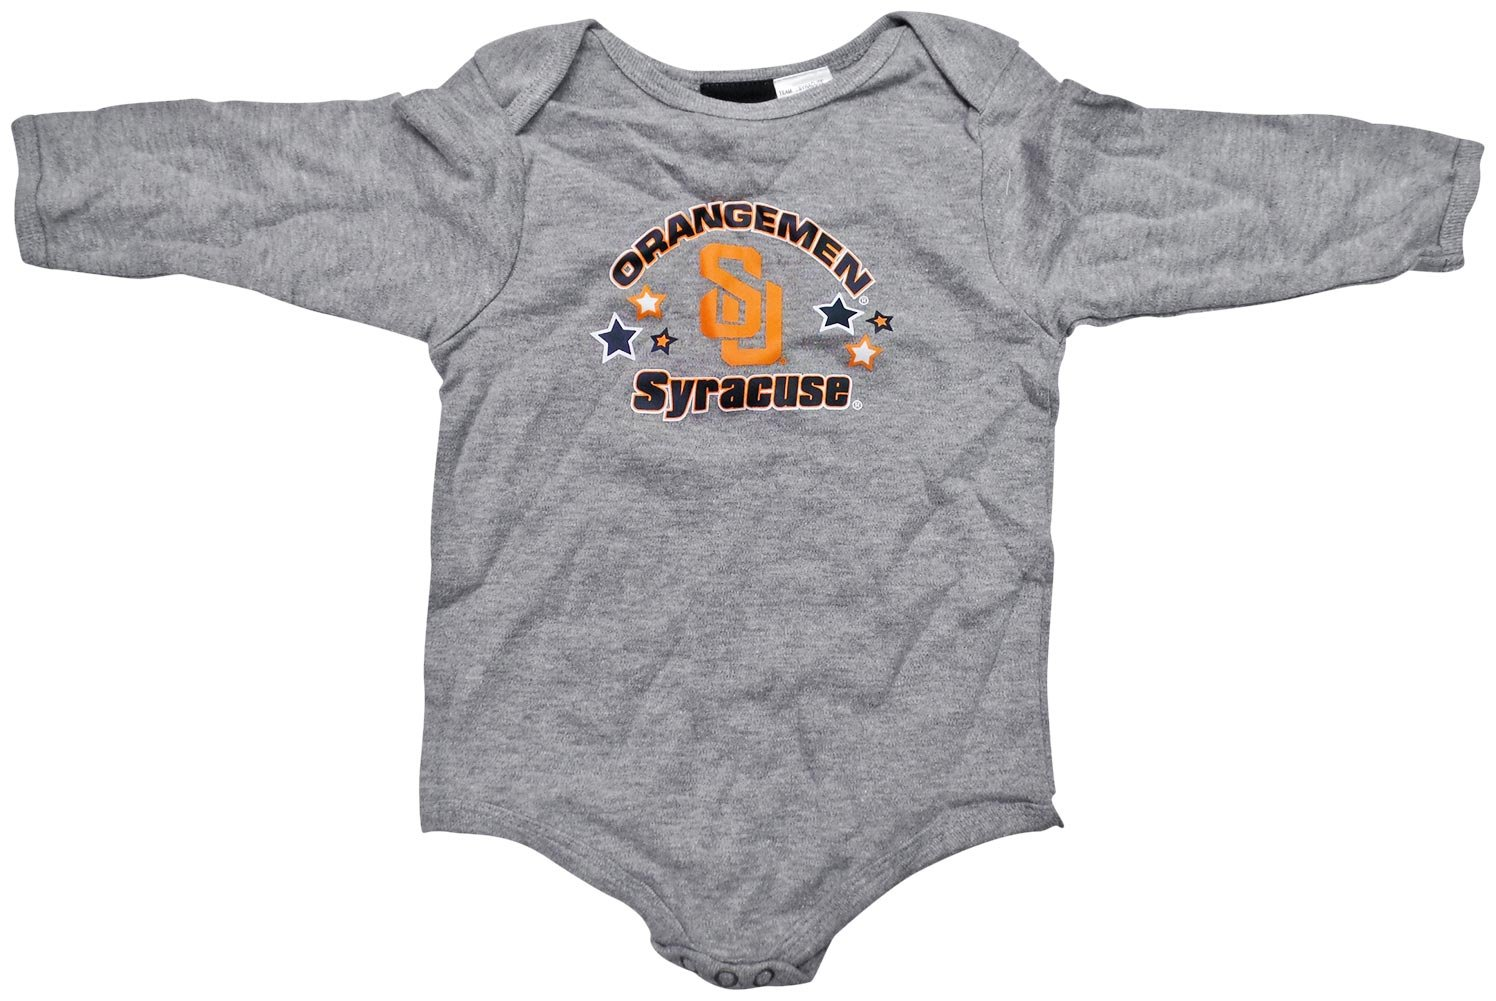 aafd9c9785f Amazon.com : Syracuse Orangemen Grey Infant/Baby Long Sleeve Onesie :  Sports & Outdoors